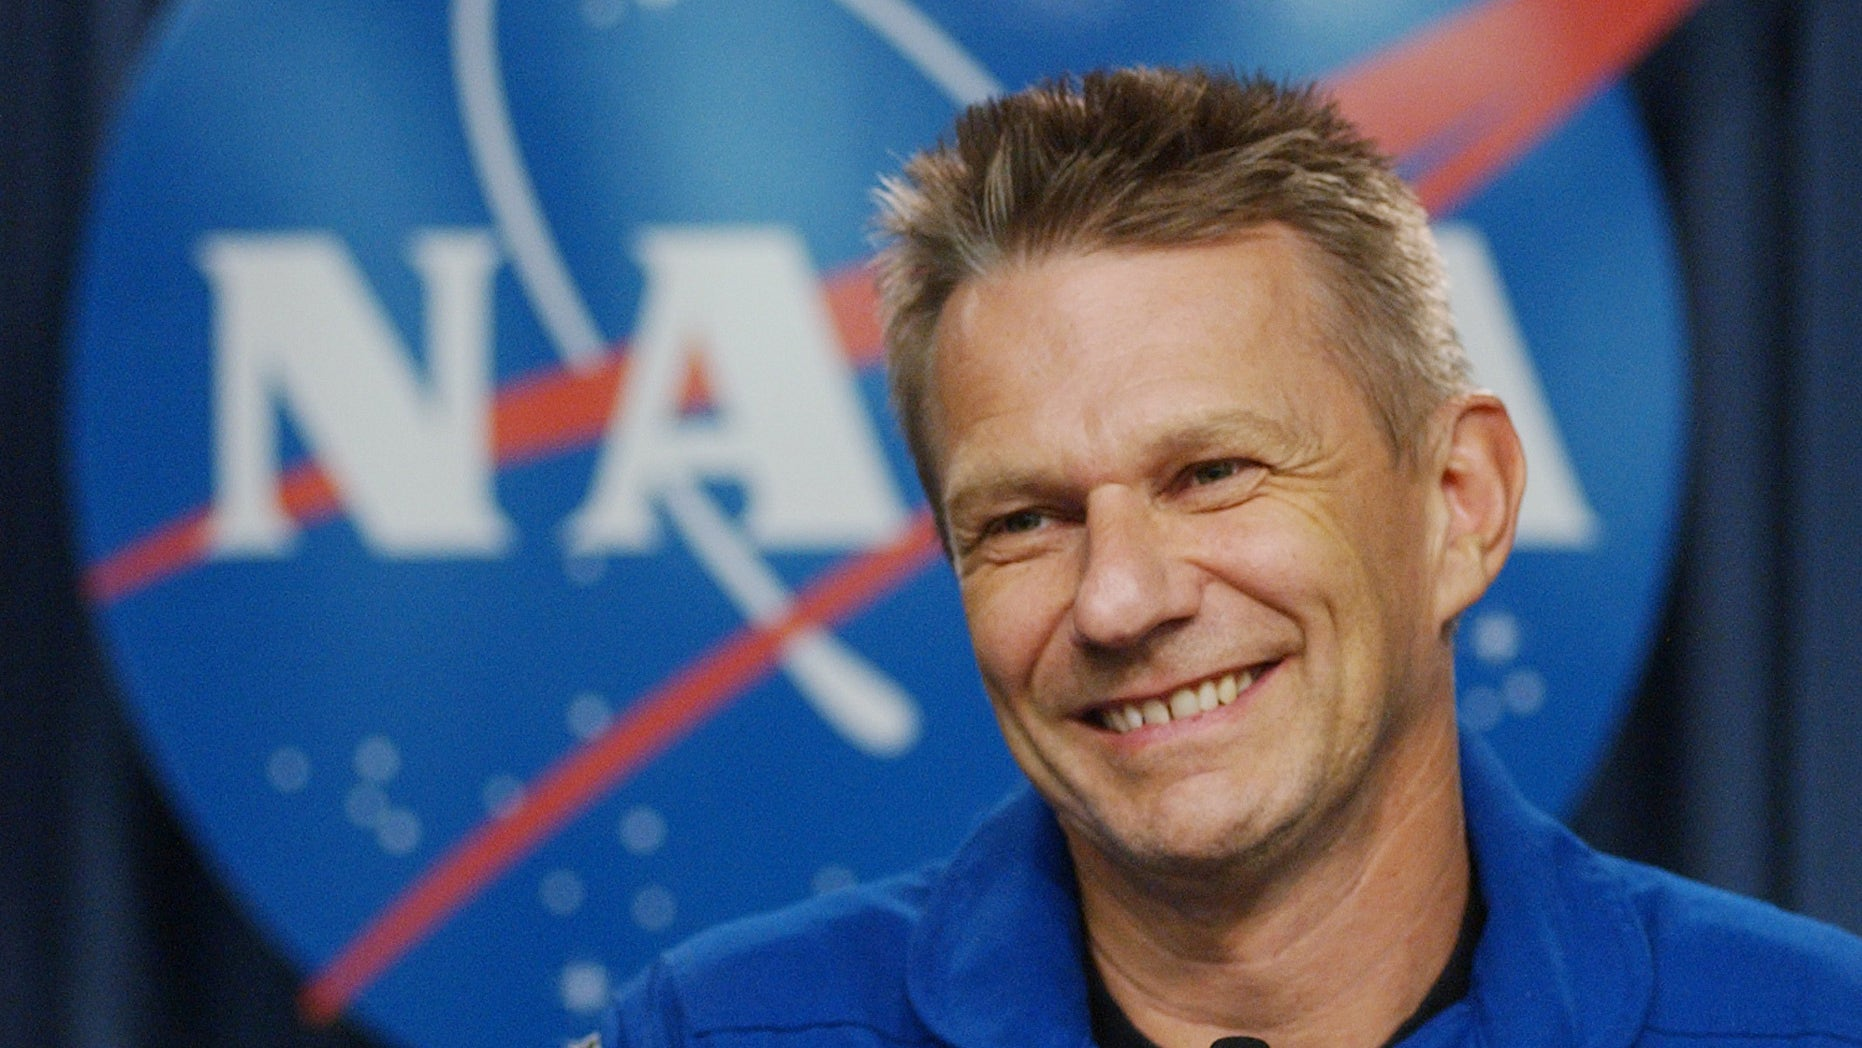 FILE - In this July 17, 2006 photo, British born U.S. Astronaut Piers Sellers talks with reporters following the safe return the space shuttle Discovery at the Kennedy Space Center in Cape Canaveral, Fla. Sellers, a climate scientist and former astronaut died Friday, Dec. 23, 2016. He was 61. (AP Photo/Pete Cosgrove, File)